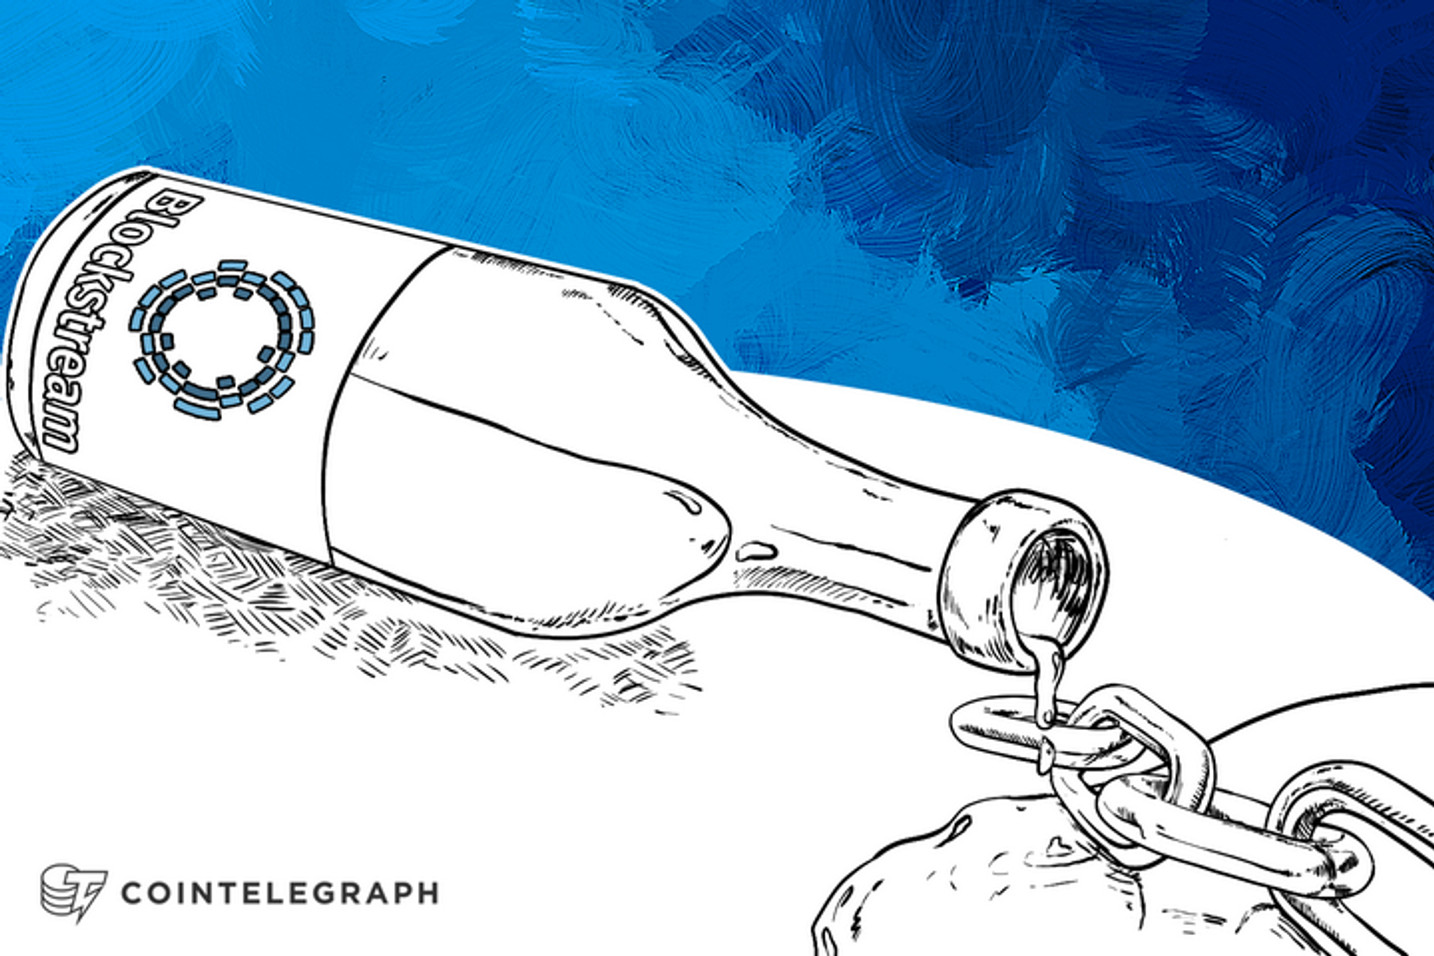 Bitcoin's First Sidechain is Blockstream's 'Liquid'